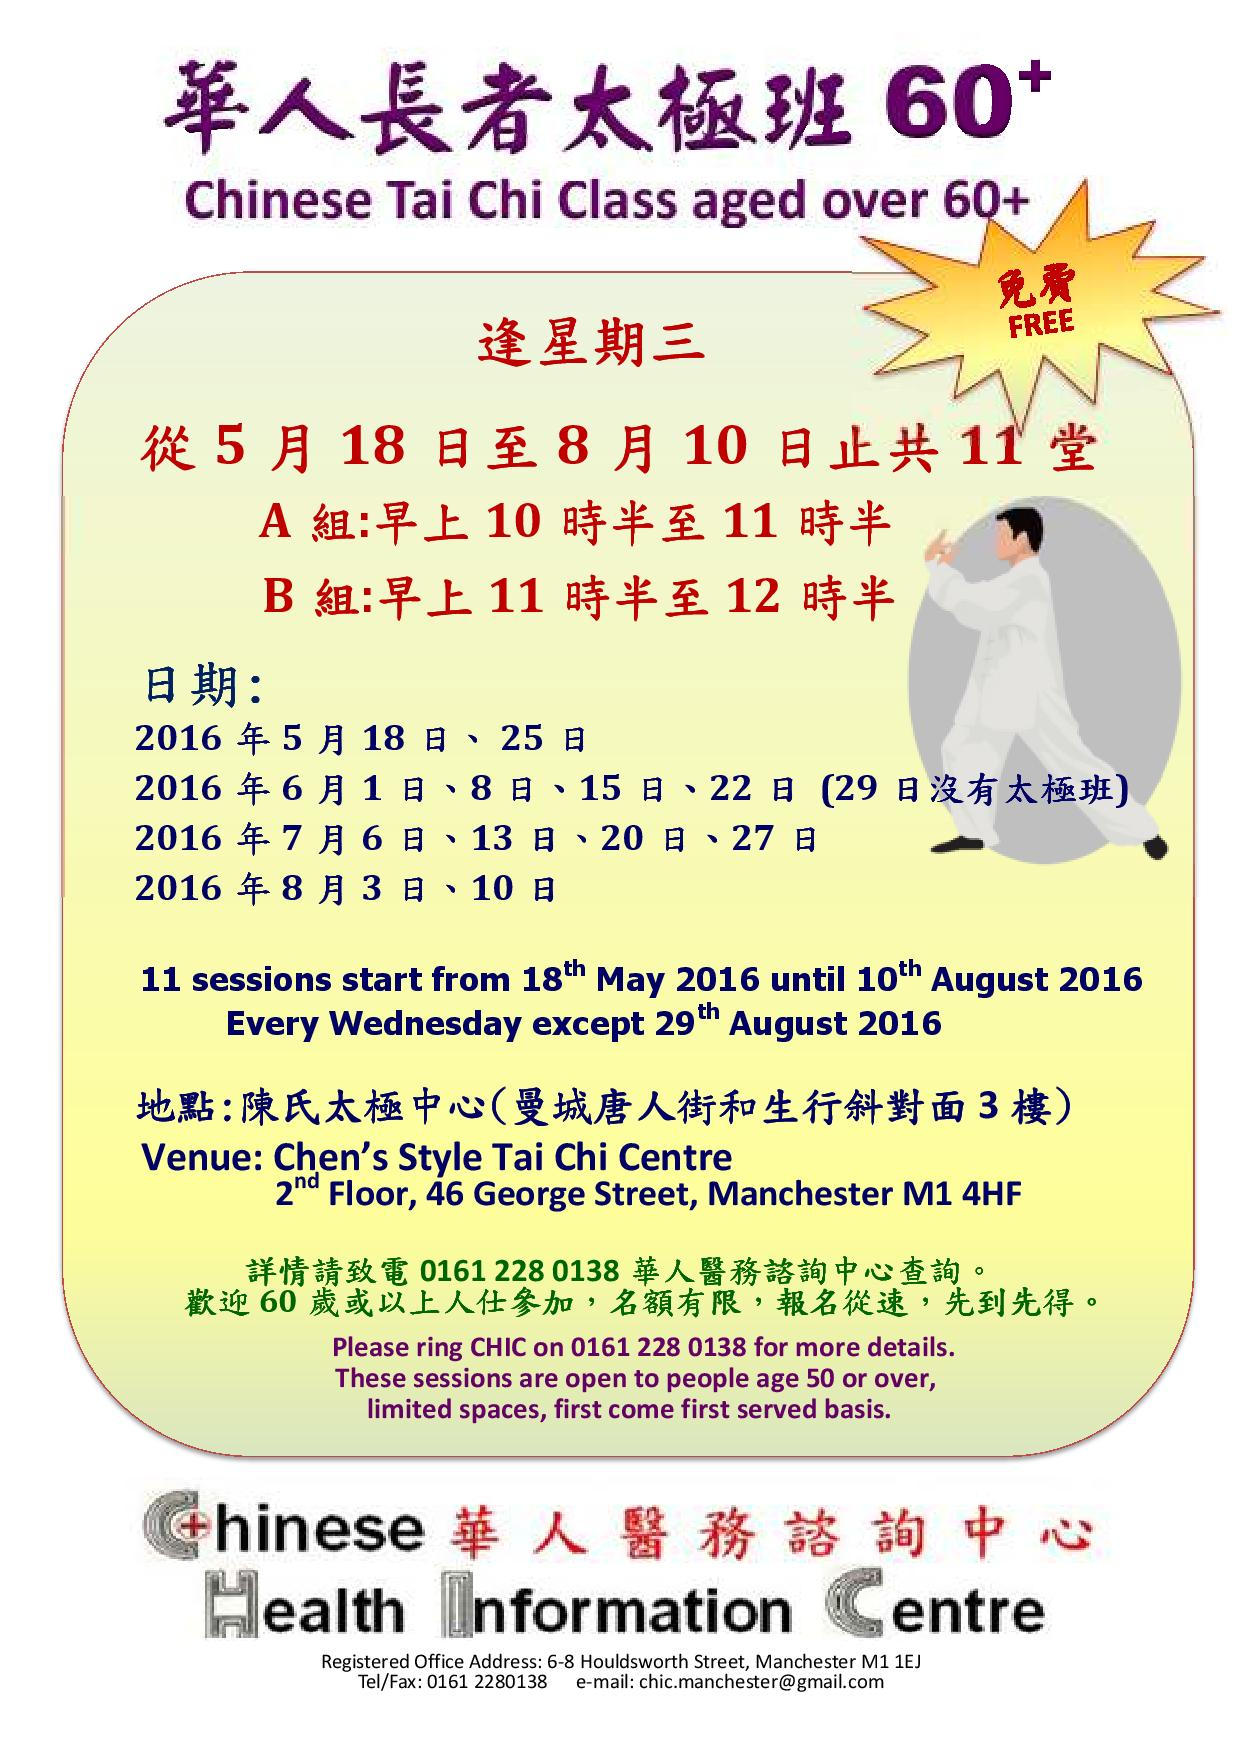 Tai Chi Classes for the over 60+